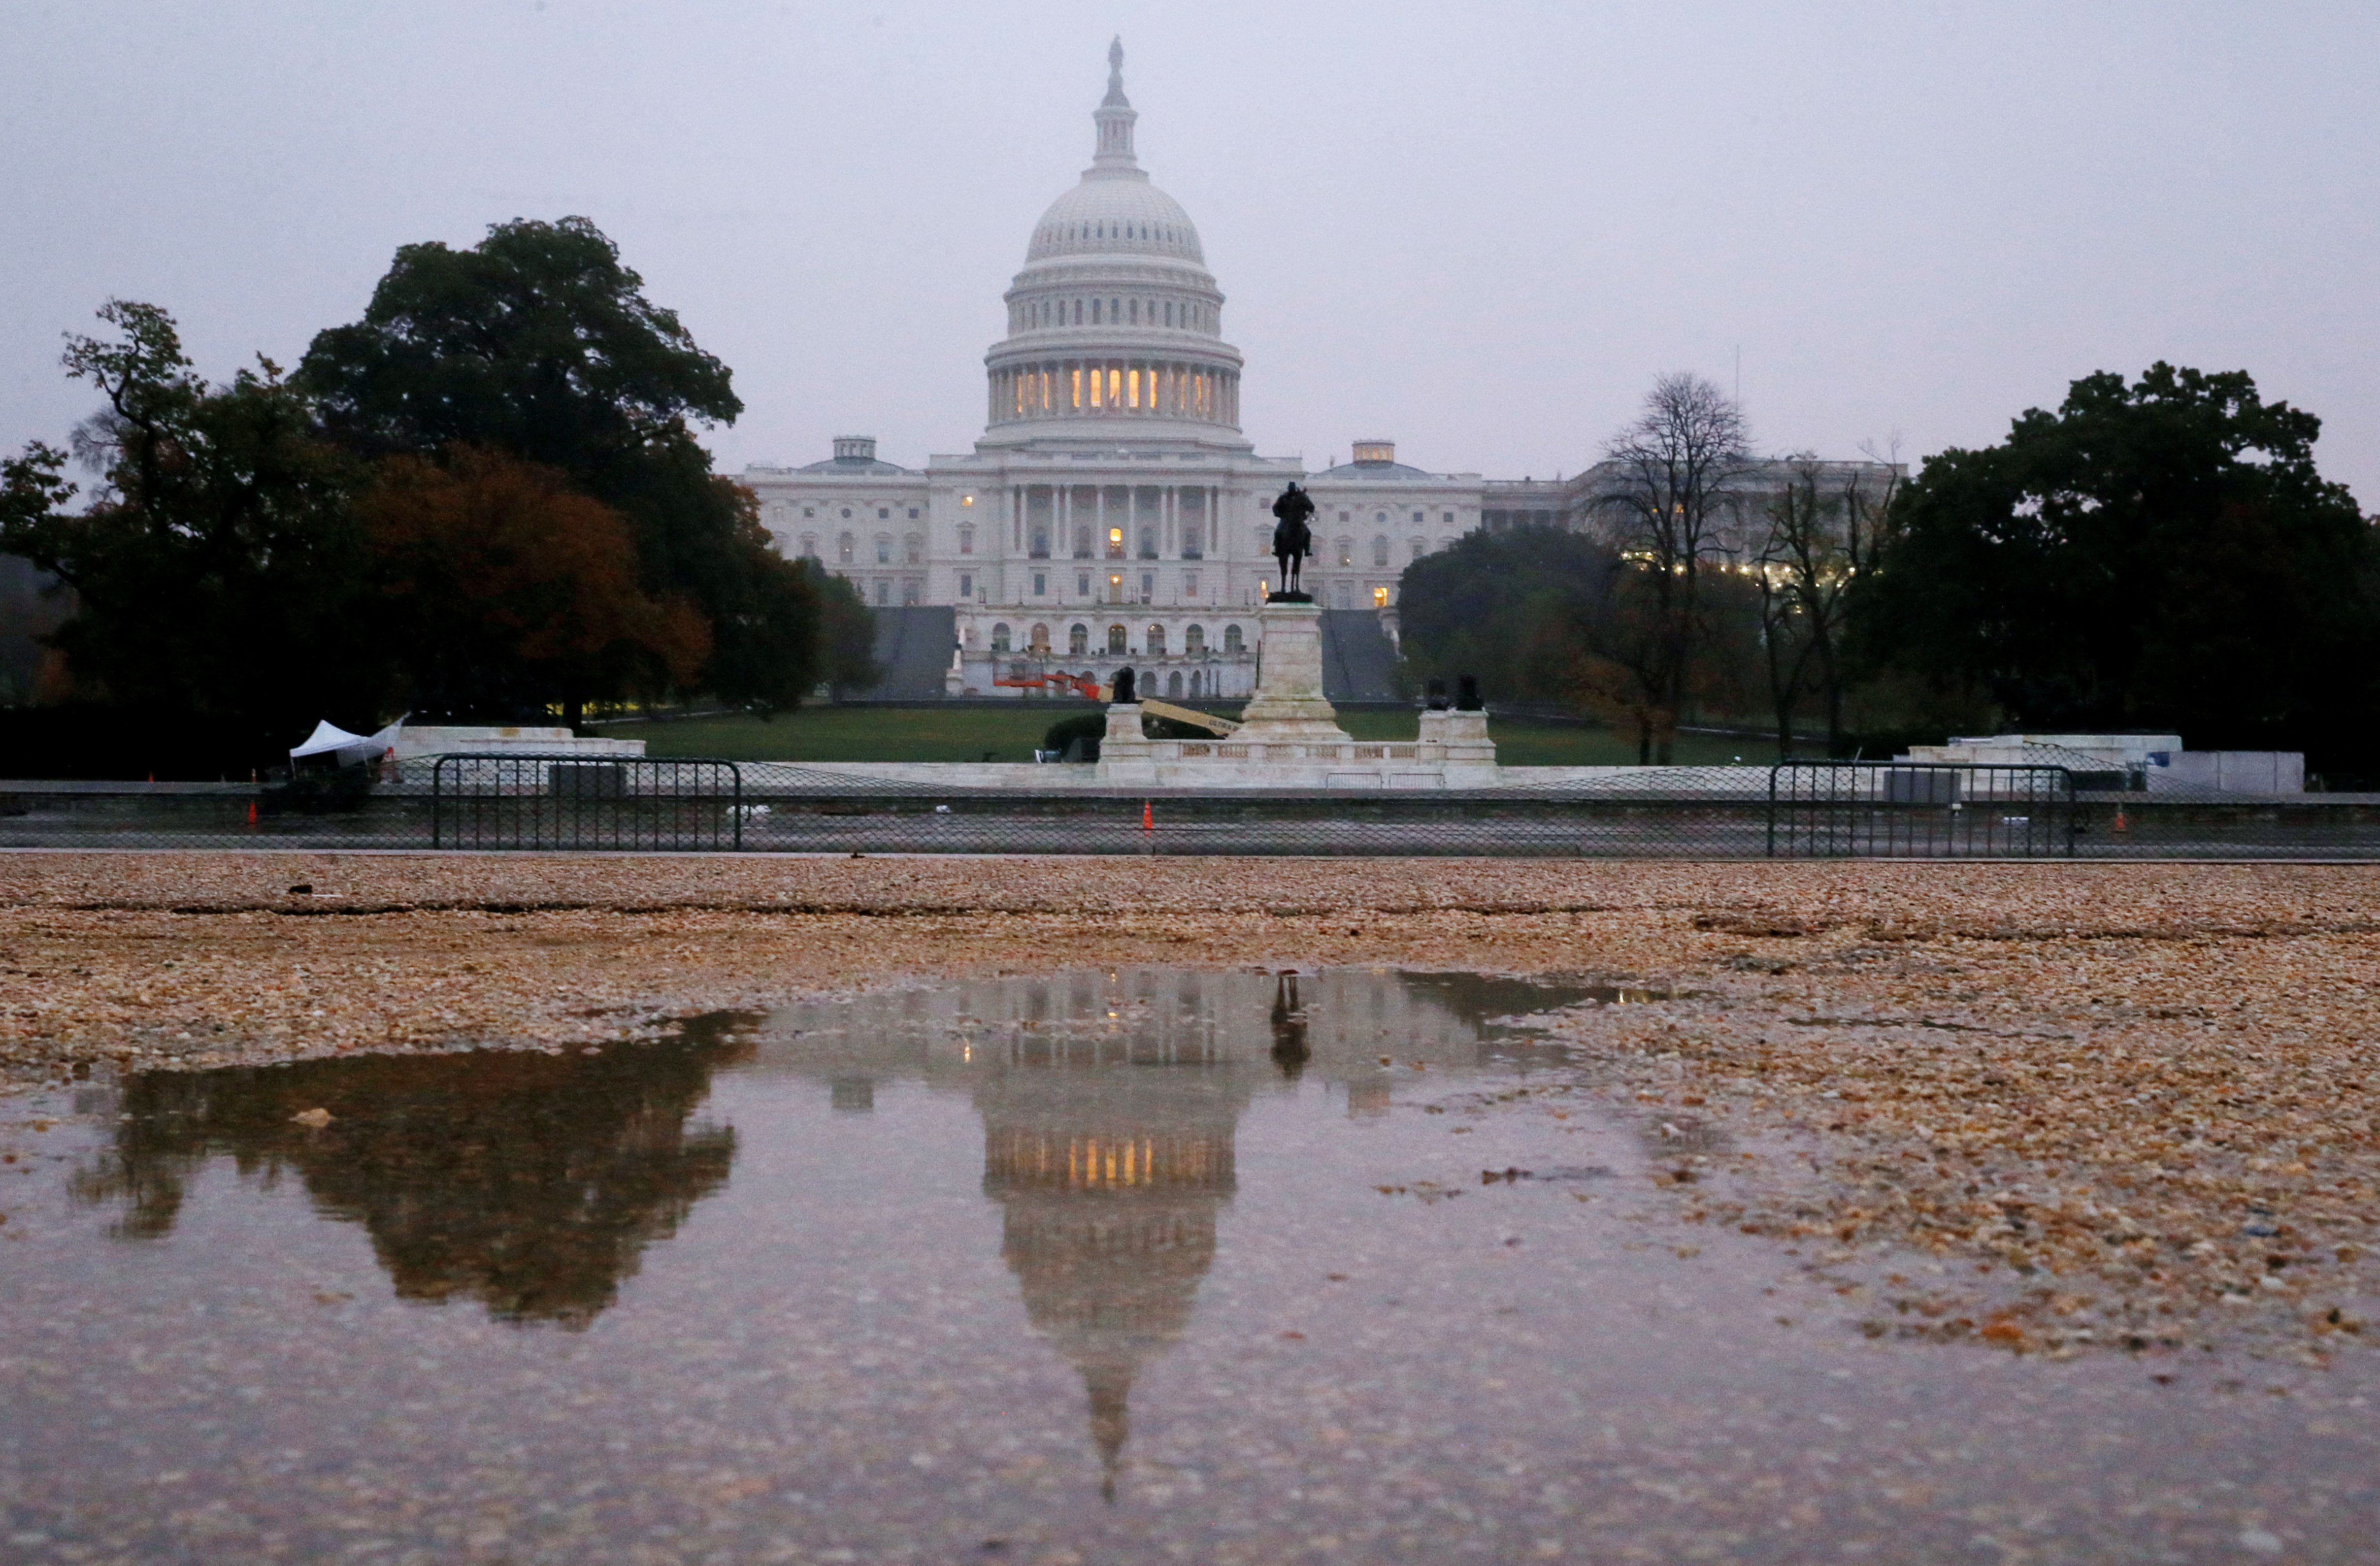 The U.S. Capitol building is seen reflected in a puddle at sunrise on the day of the U.S. midterm election as voters go to the polls across the country to elect 33 U.S. senators and all 435 members of the U.S. House of Representatives in Washington, U.S., November 6, 2018. REUTERS/Jim Bourg